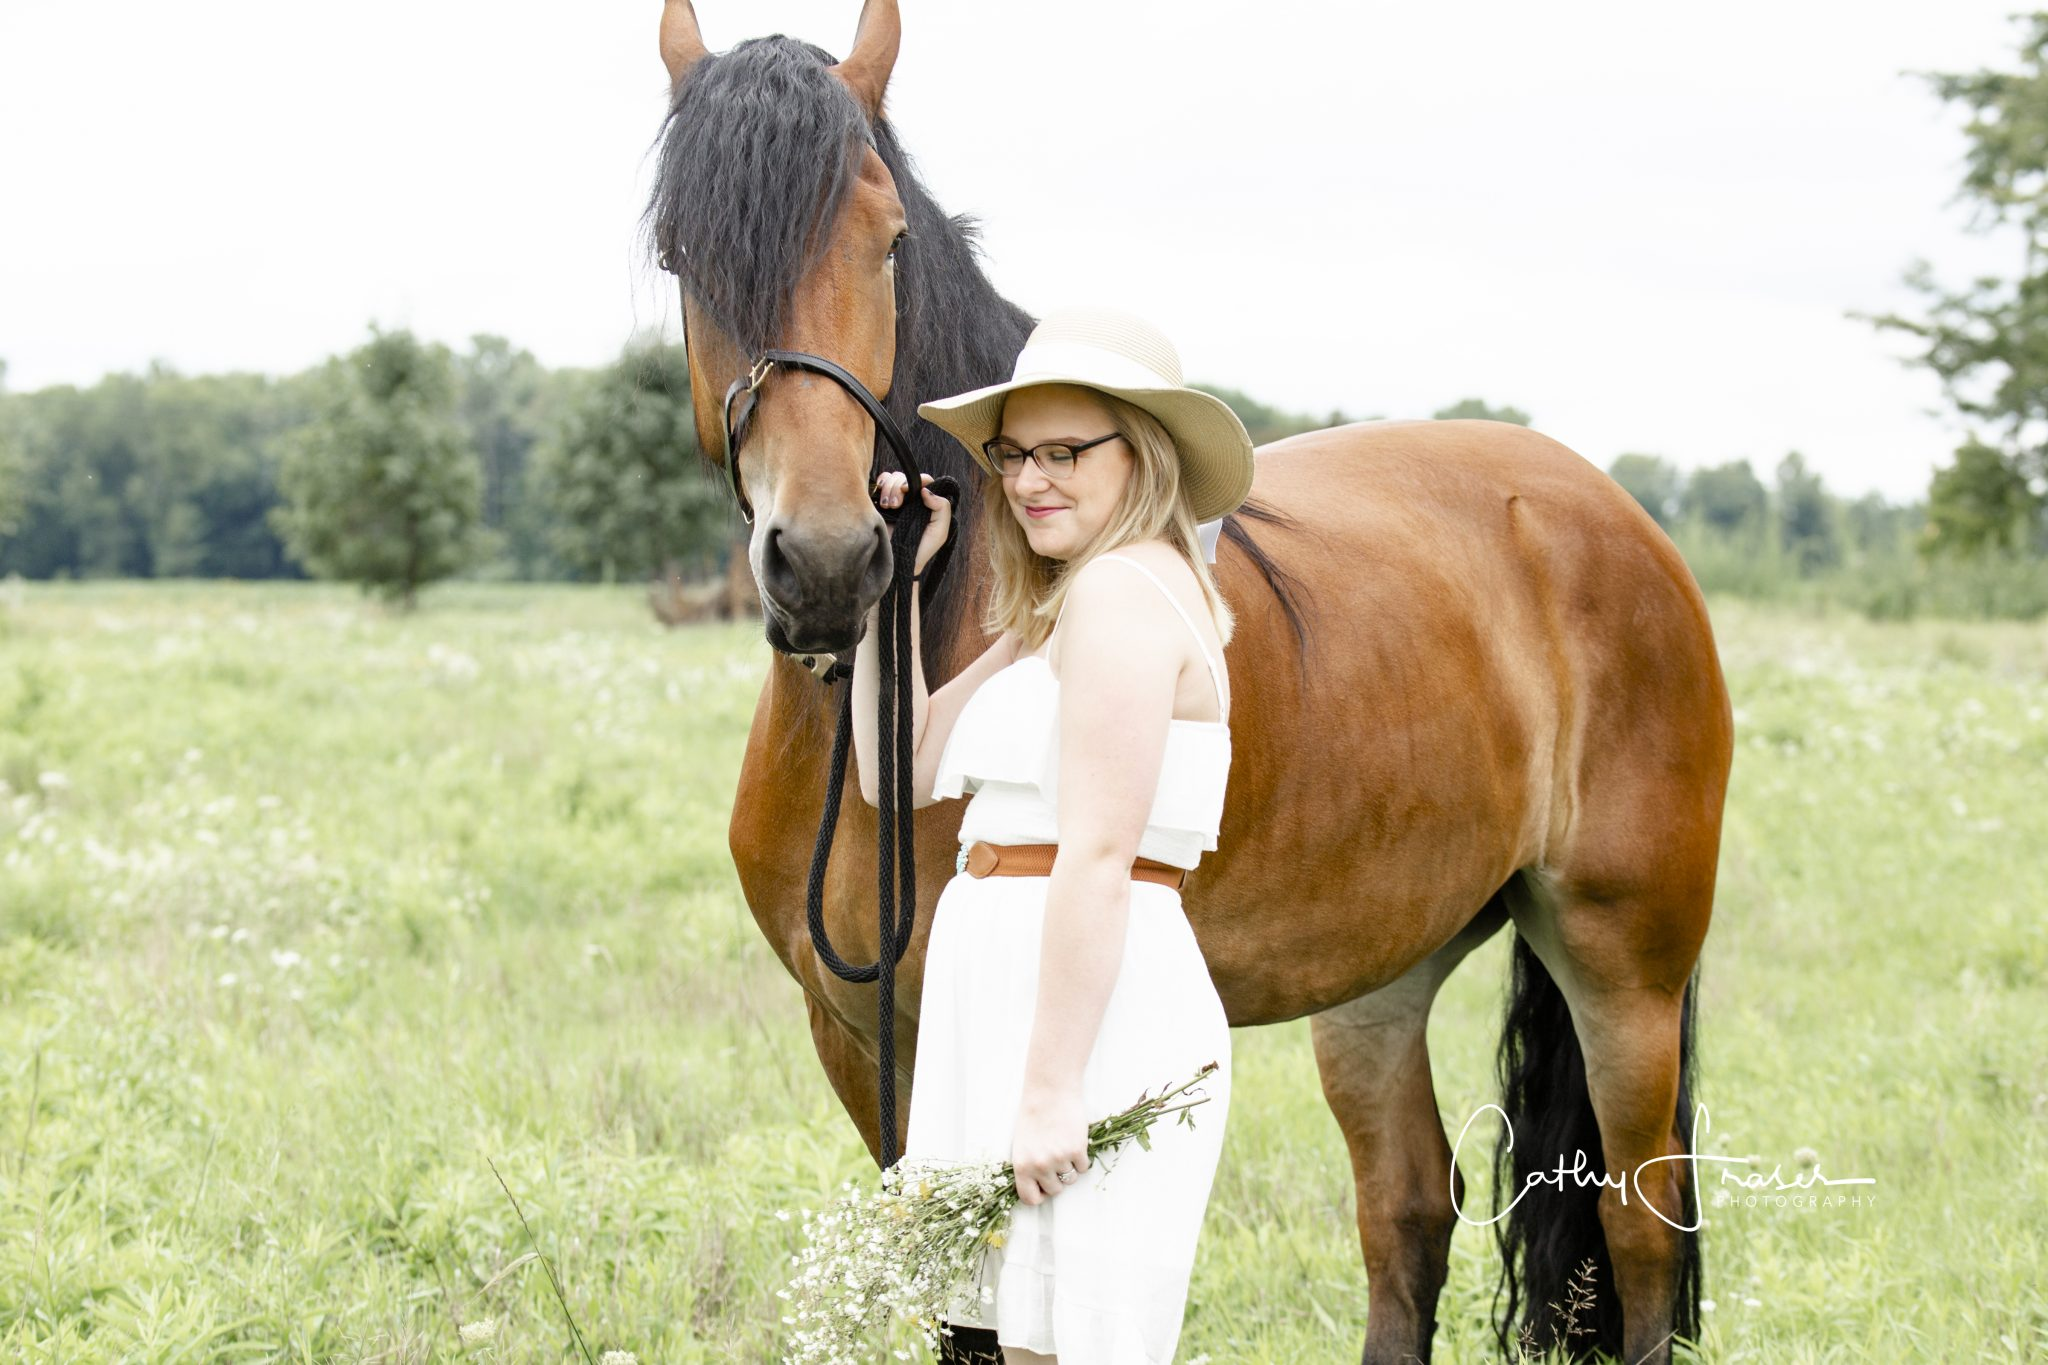 Senior session, Senior pictures, professional senior pictures, portraits, head shots, Byron New York, horse photography